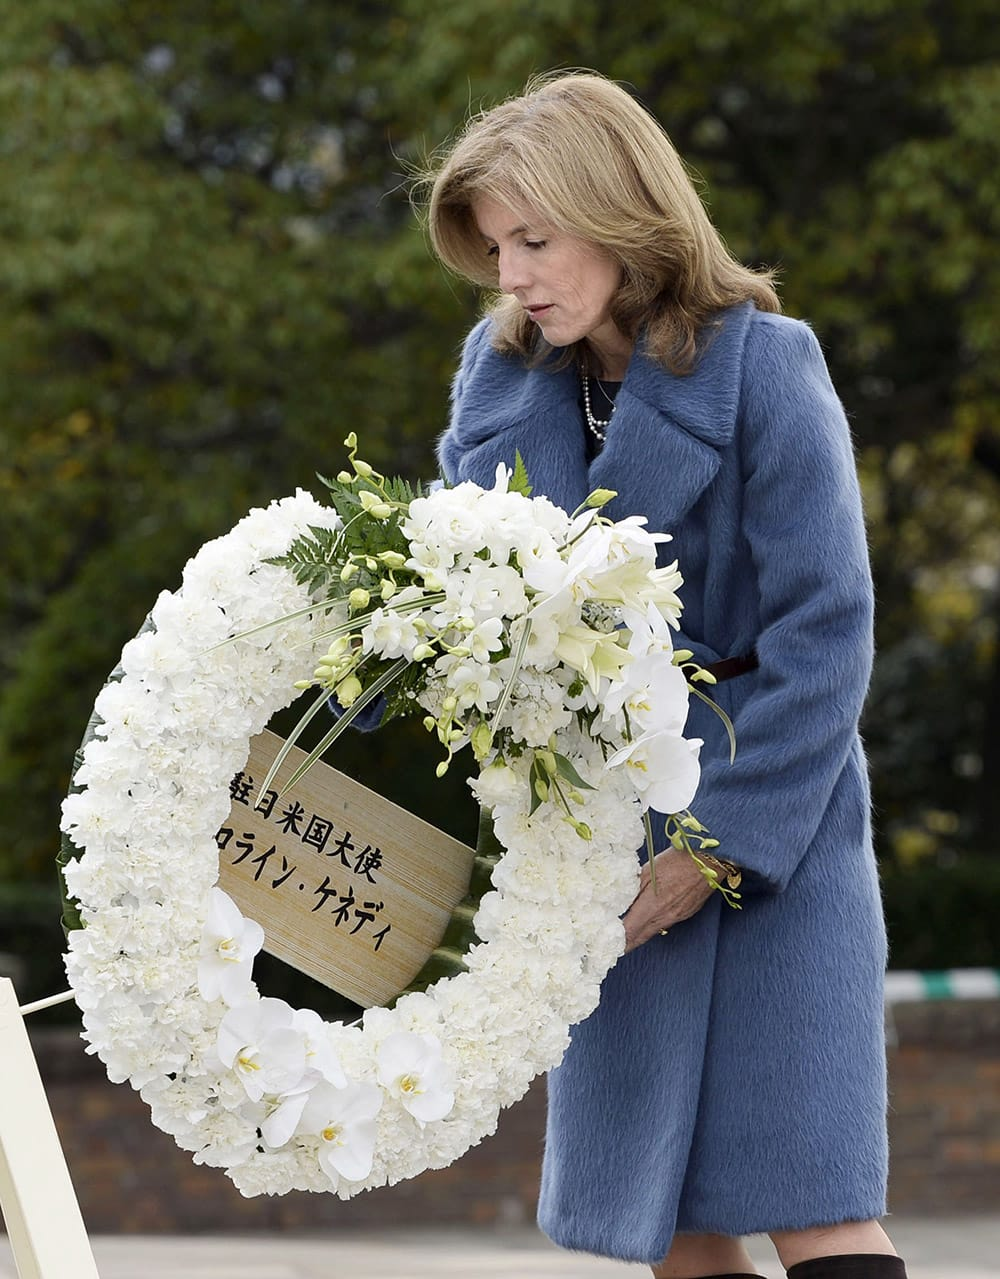 Caroline Kennedy, U.S. ambassador to Japan, offers a wreath in front of the Statue of Peace at Nagasaki Peace Park in Nagasaki, southern Japan.